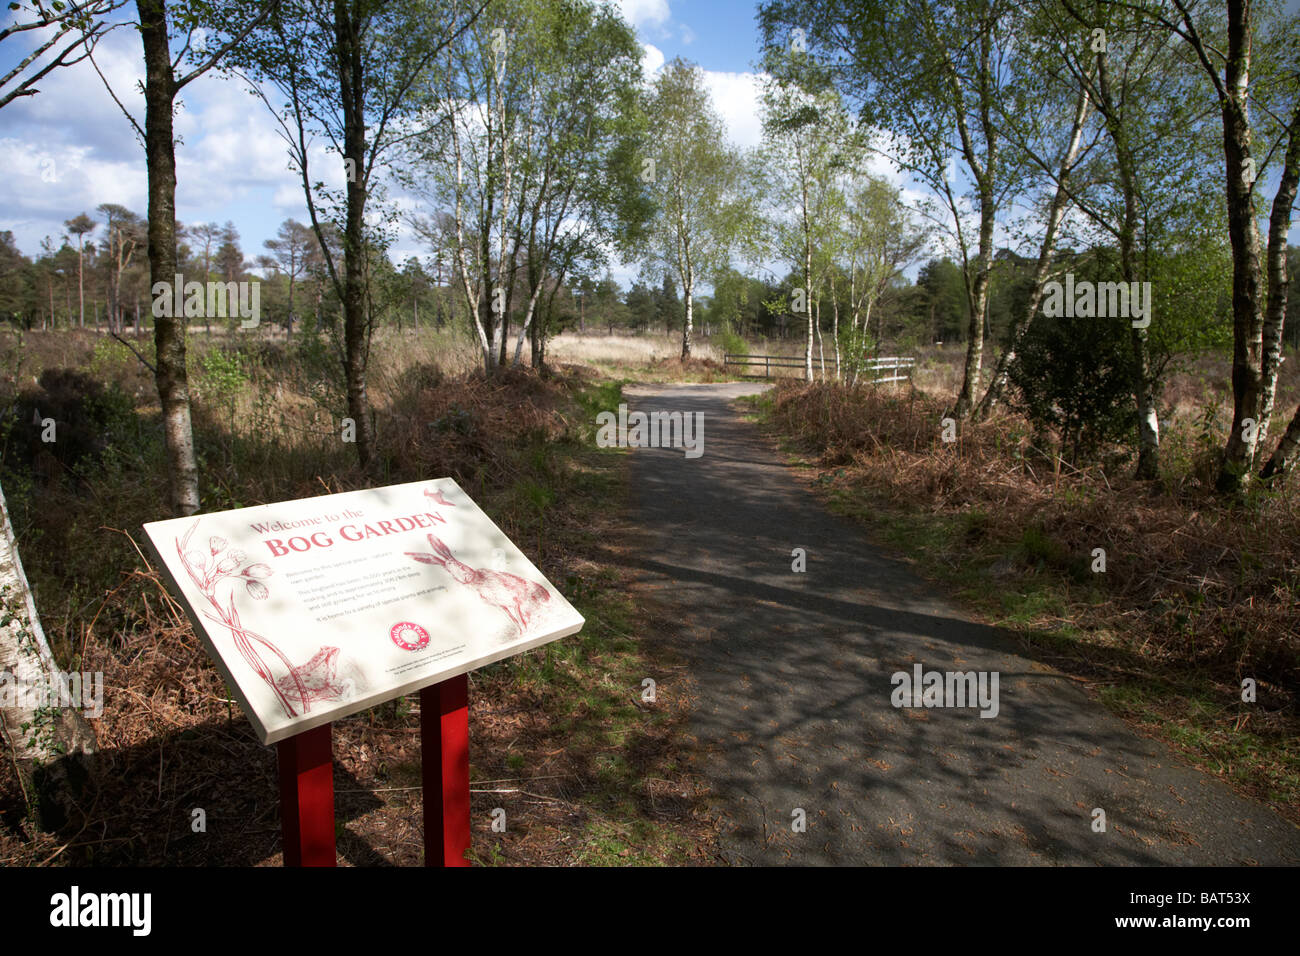 the bog garden peatland education area at Peatlands country Park county tyrone northern ireland uk - Stock Image